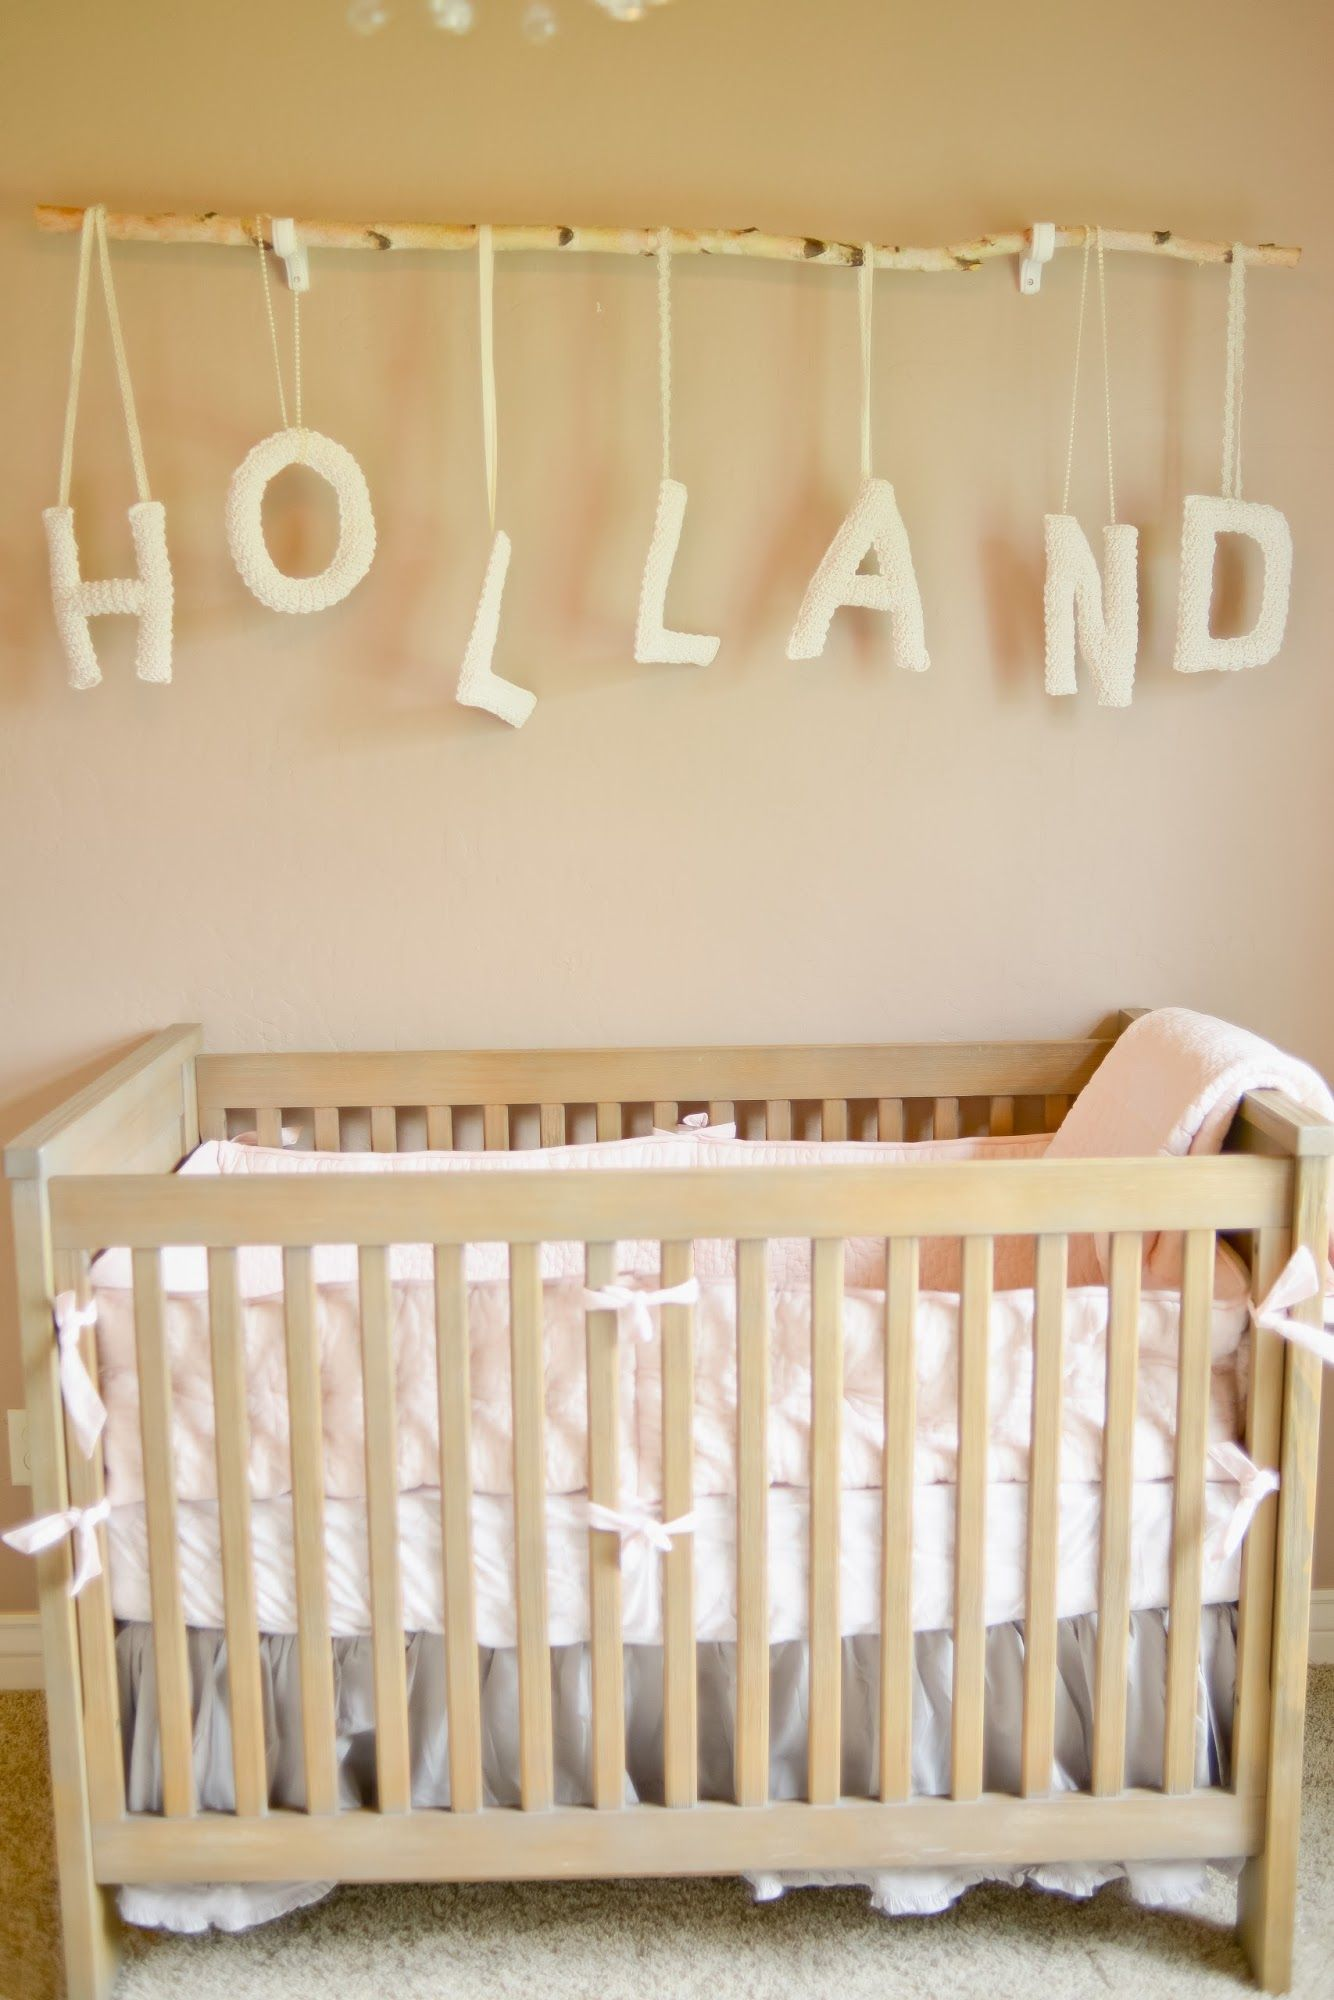 Marvelous Cute Nursery Ideas Part - 7: Cute Nursery Idea- Baby Name Strung From Painted Branch